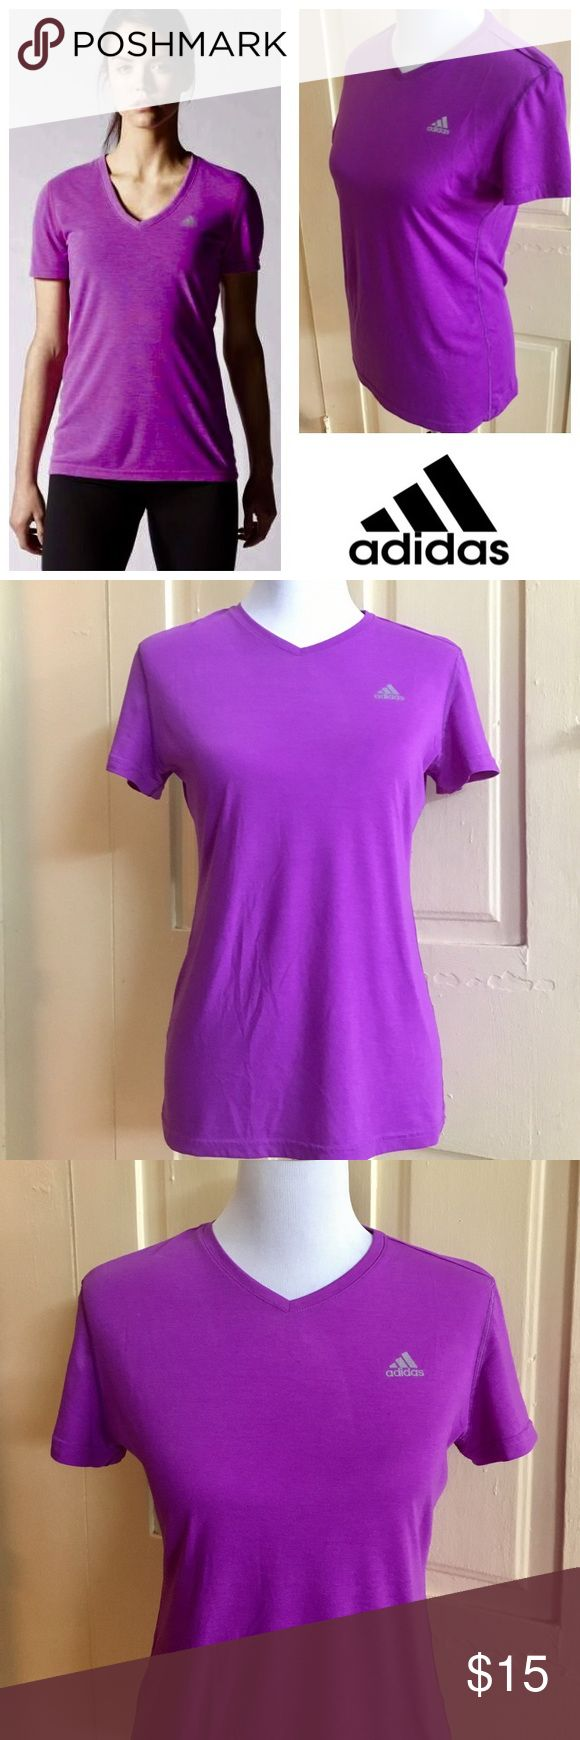 Adidas Ultimate Short Sleeve V-Neck Purple Tee (M) With the Adidas Women's Ultimate Short Sleeve V-Neck Tee, there are no limits! Release your inner beast with this t-shirt's anti-odor finish and wicks moisture fabric. This slim fitting top will boost your confidence and performance all at once. Great for daily workouts and active fun, add this dynamic top to your healthy lifestyle.   Color: purple (with a magenta hue).  Women's size medium.  85% polyester, 15% cotton.  Slim fit.  V-neck…